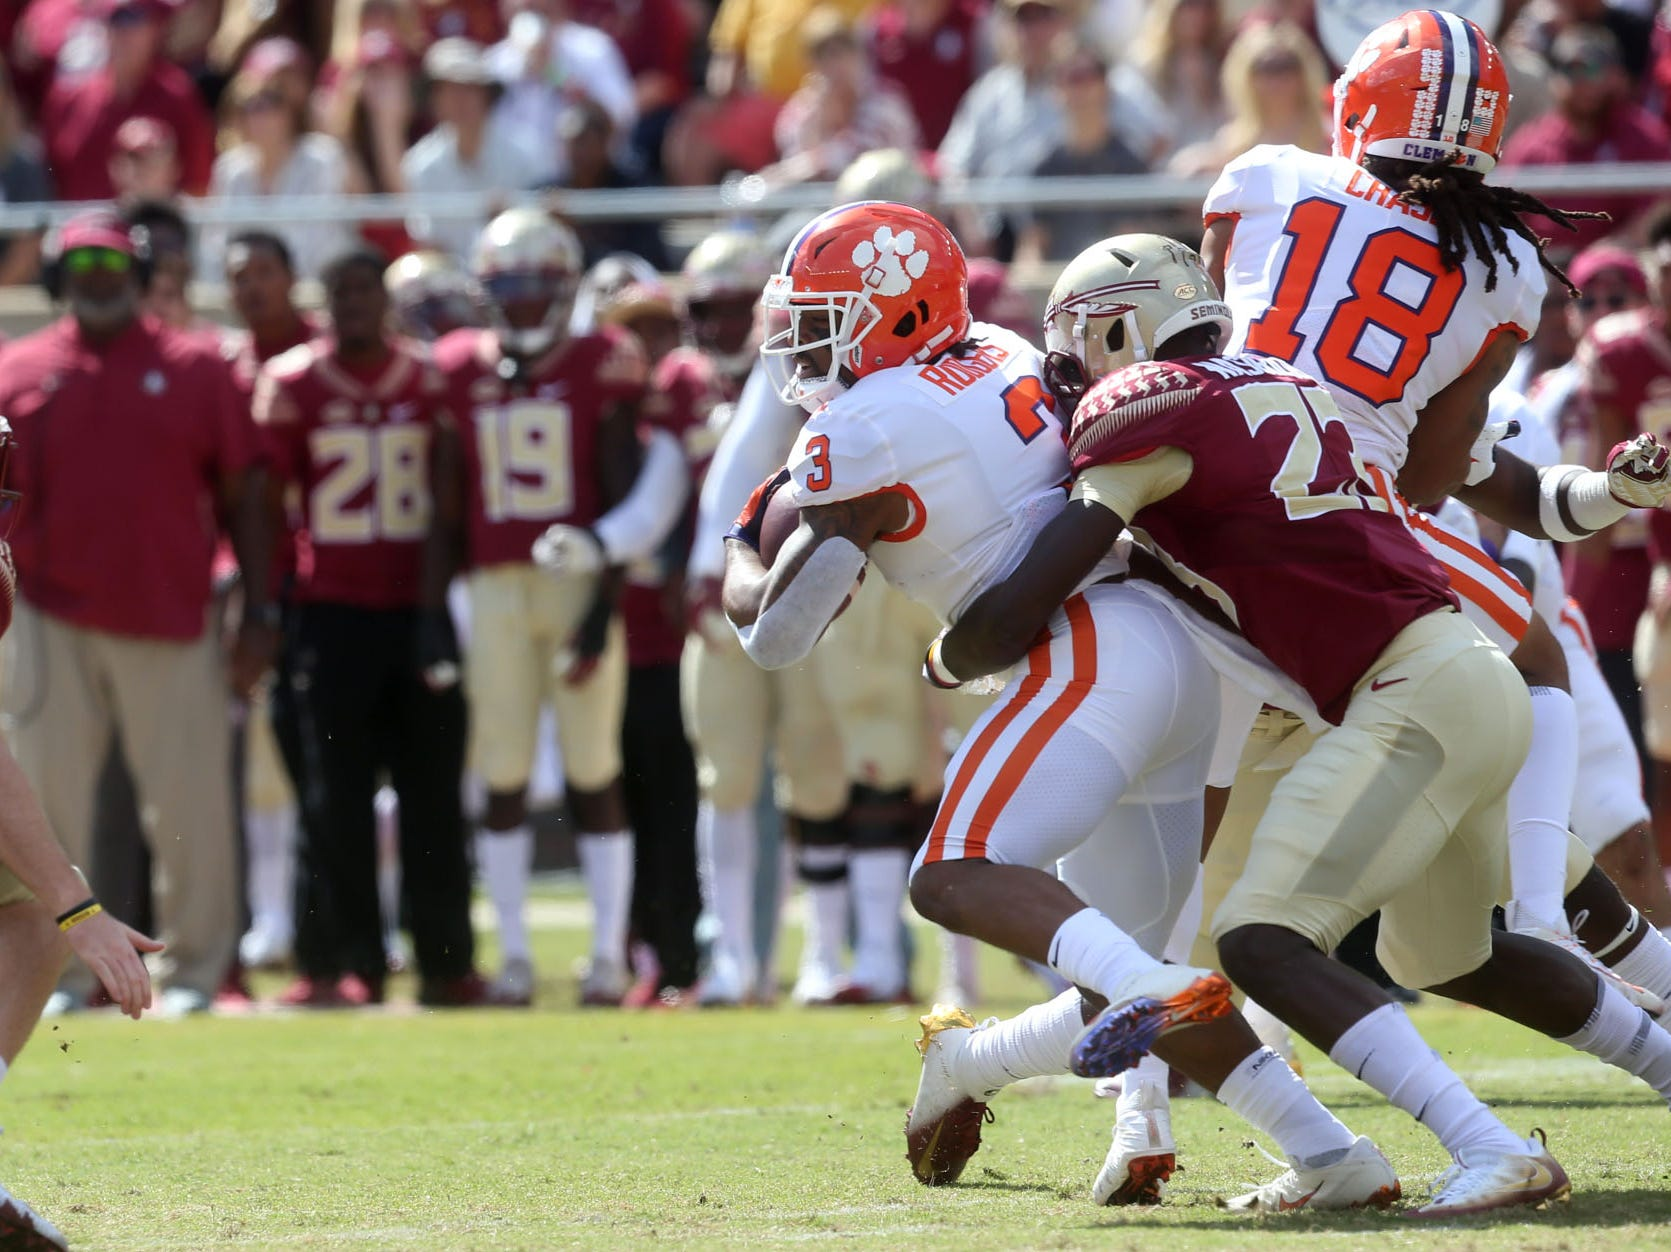 The Florida State Seminoles take on the Clemson Tigers in college football at Doak S. Campbell Stadium on Saturday, Oct. 27, 2018.